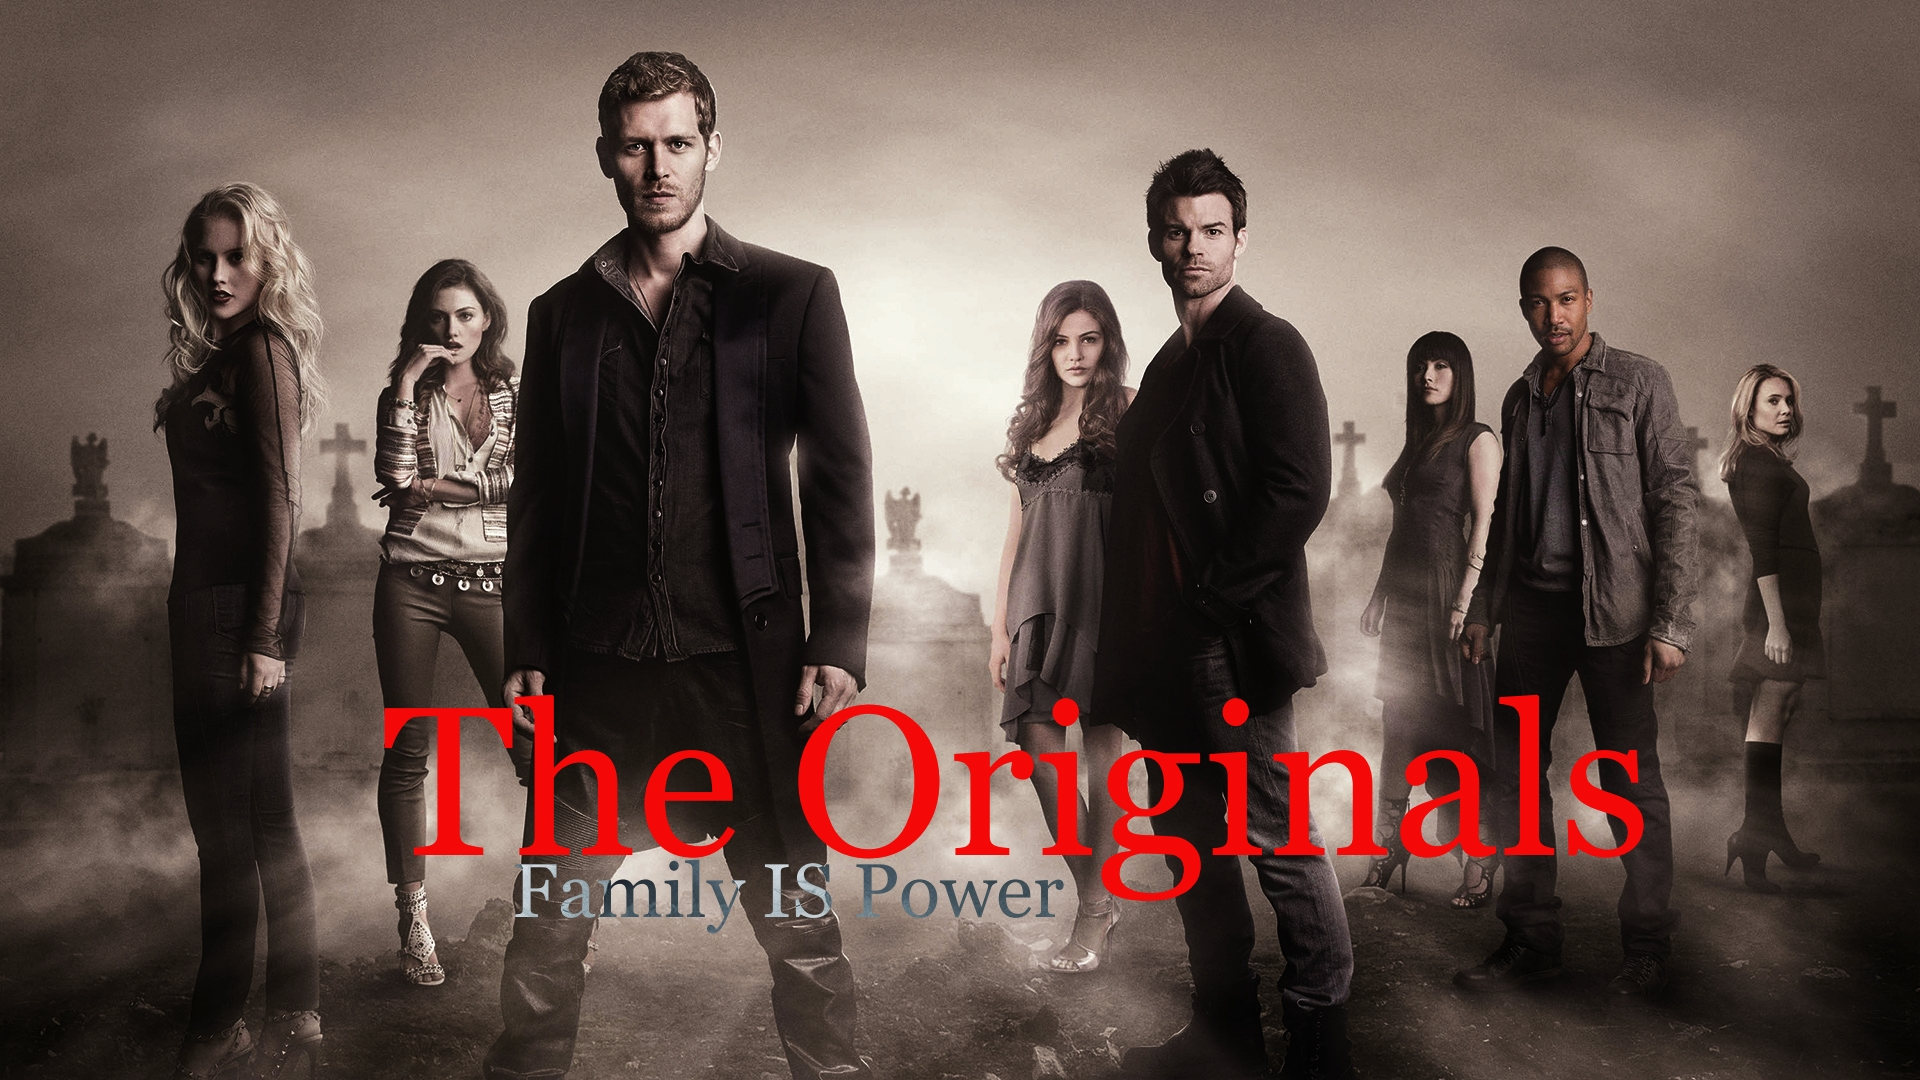 The Originals Wallpapers High Resolution and Quality Download